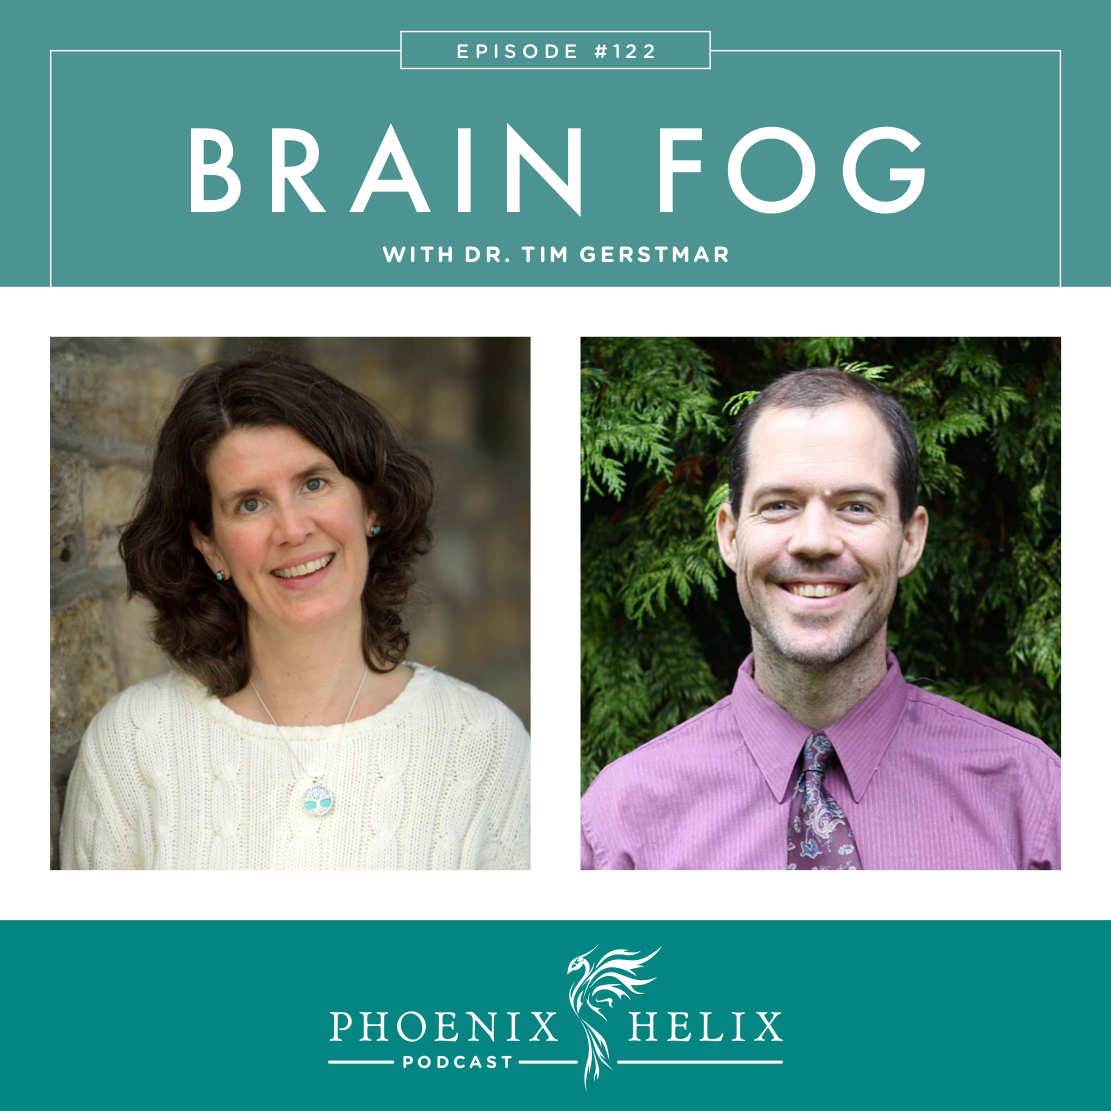 Brain Fog with Dr. Tim Gerstmar | Phoenix Helix Podcast